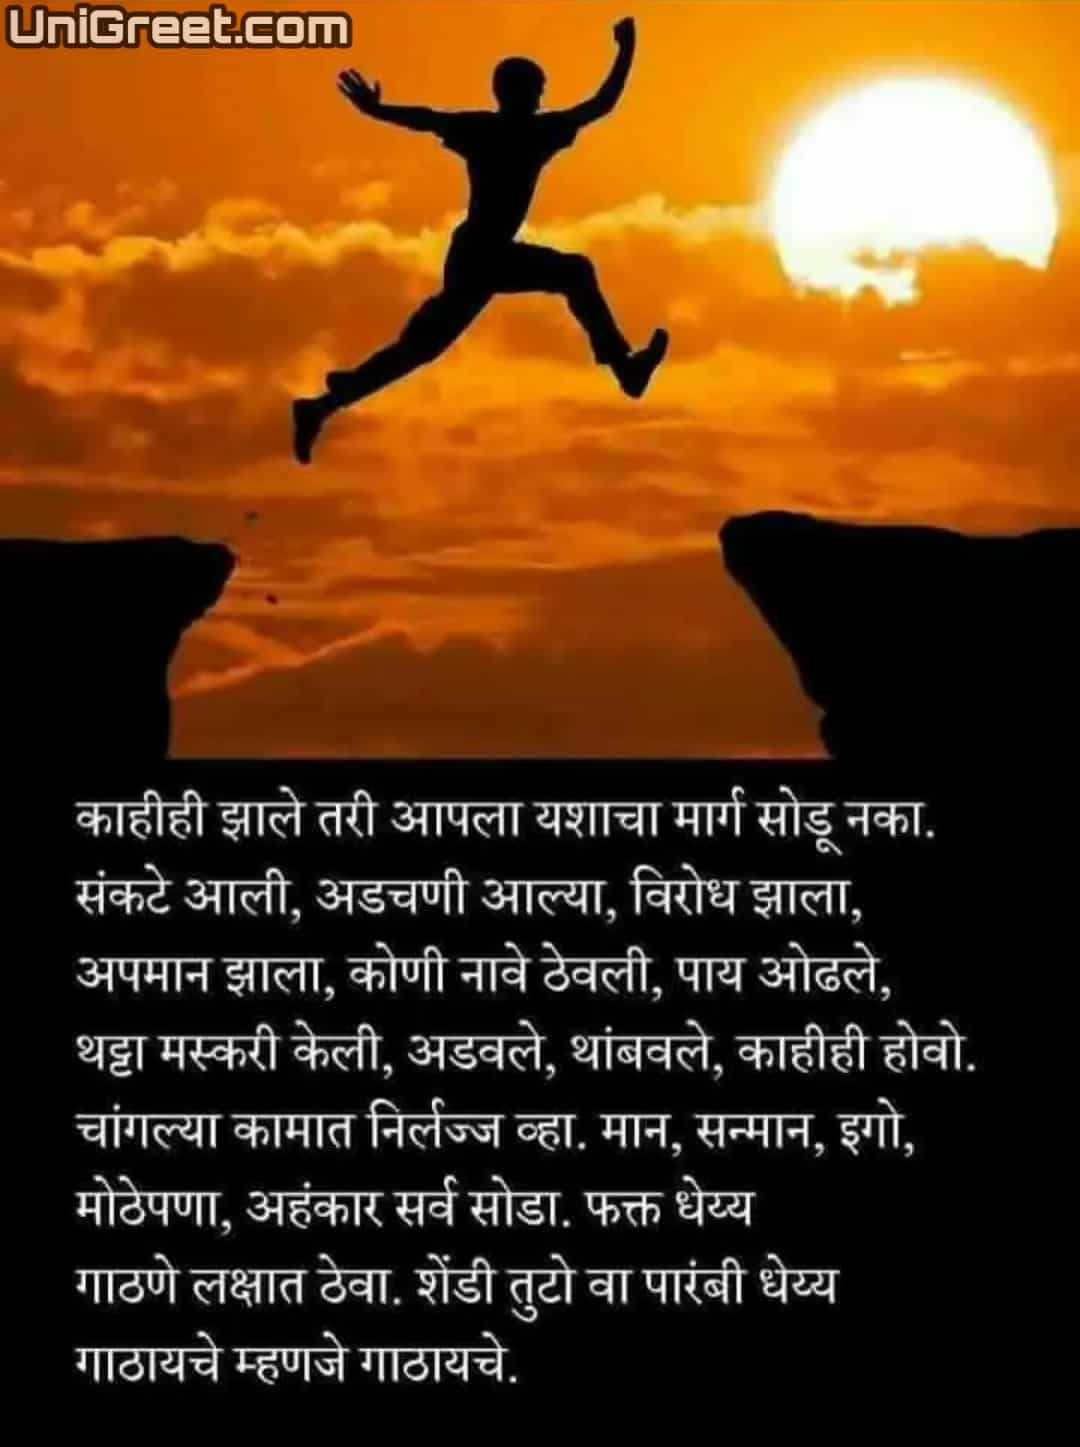 New Marathi Inspirational / Motivational Quotes Images Status In Marathi For Whatsapp